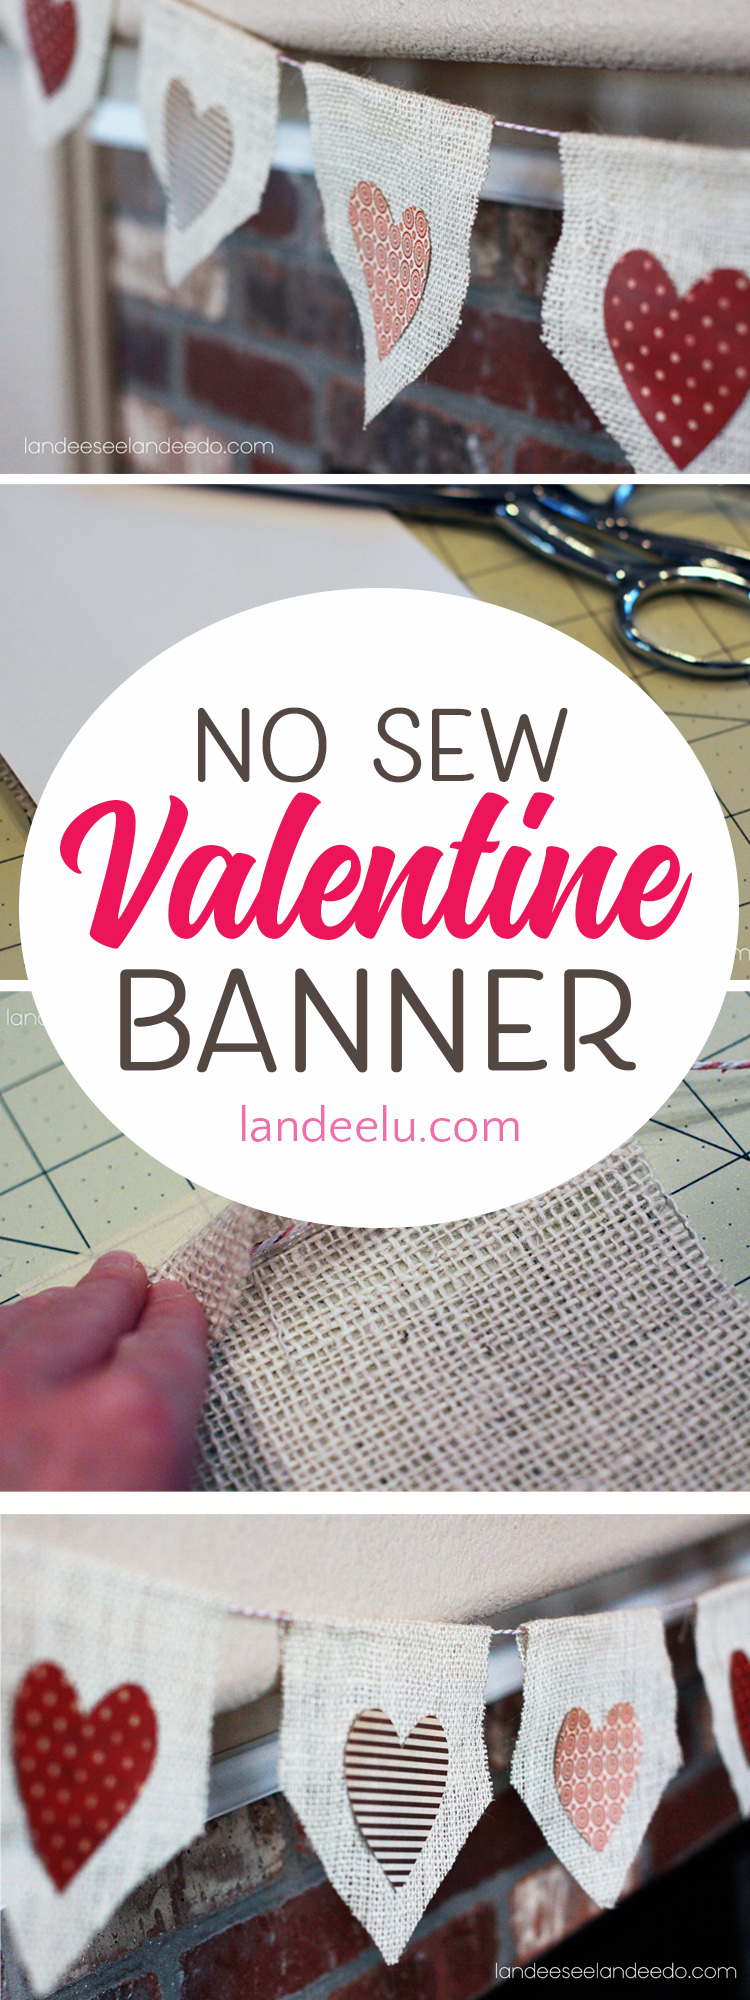 A Quick and Easy No Sew Valentine Banner! Get those Valentine decorations up in no time! #valentinesdaydecorations #valentinesday #burlap #burlapbanner #valentinedecor #diyvalentine